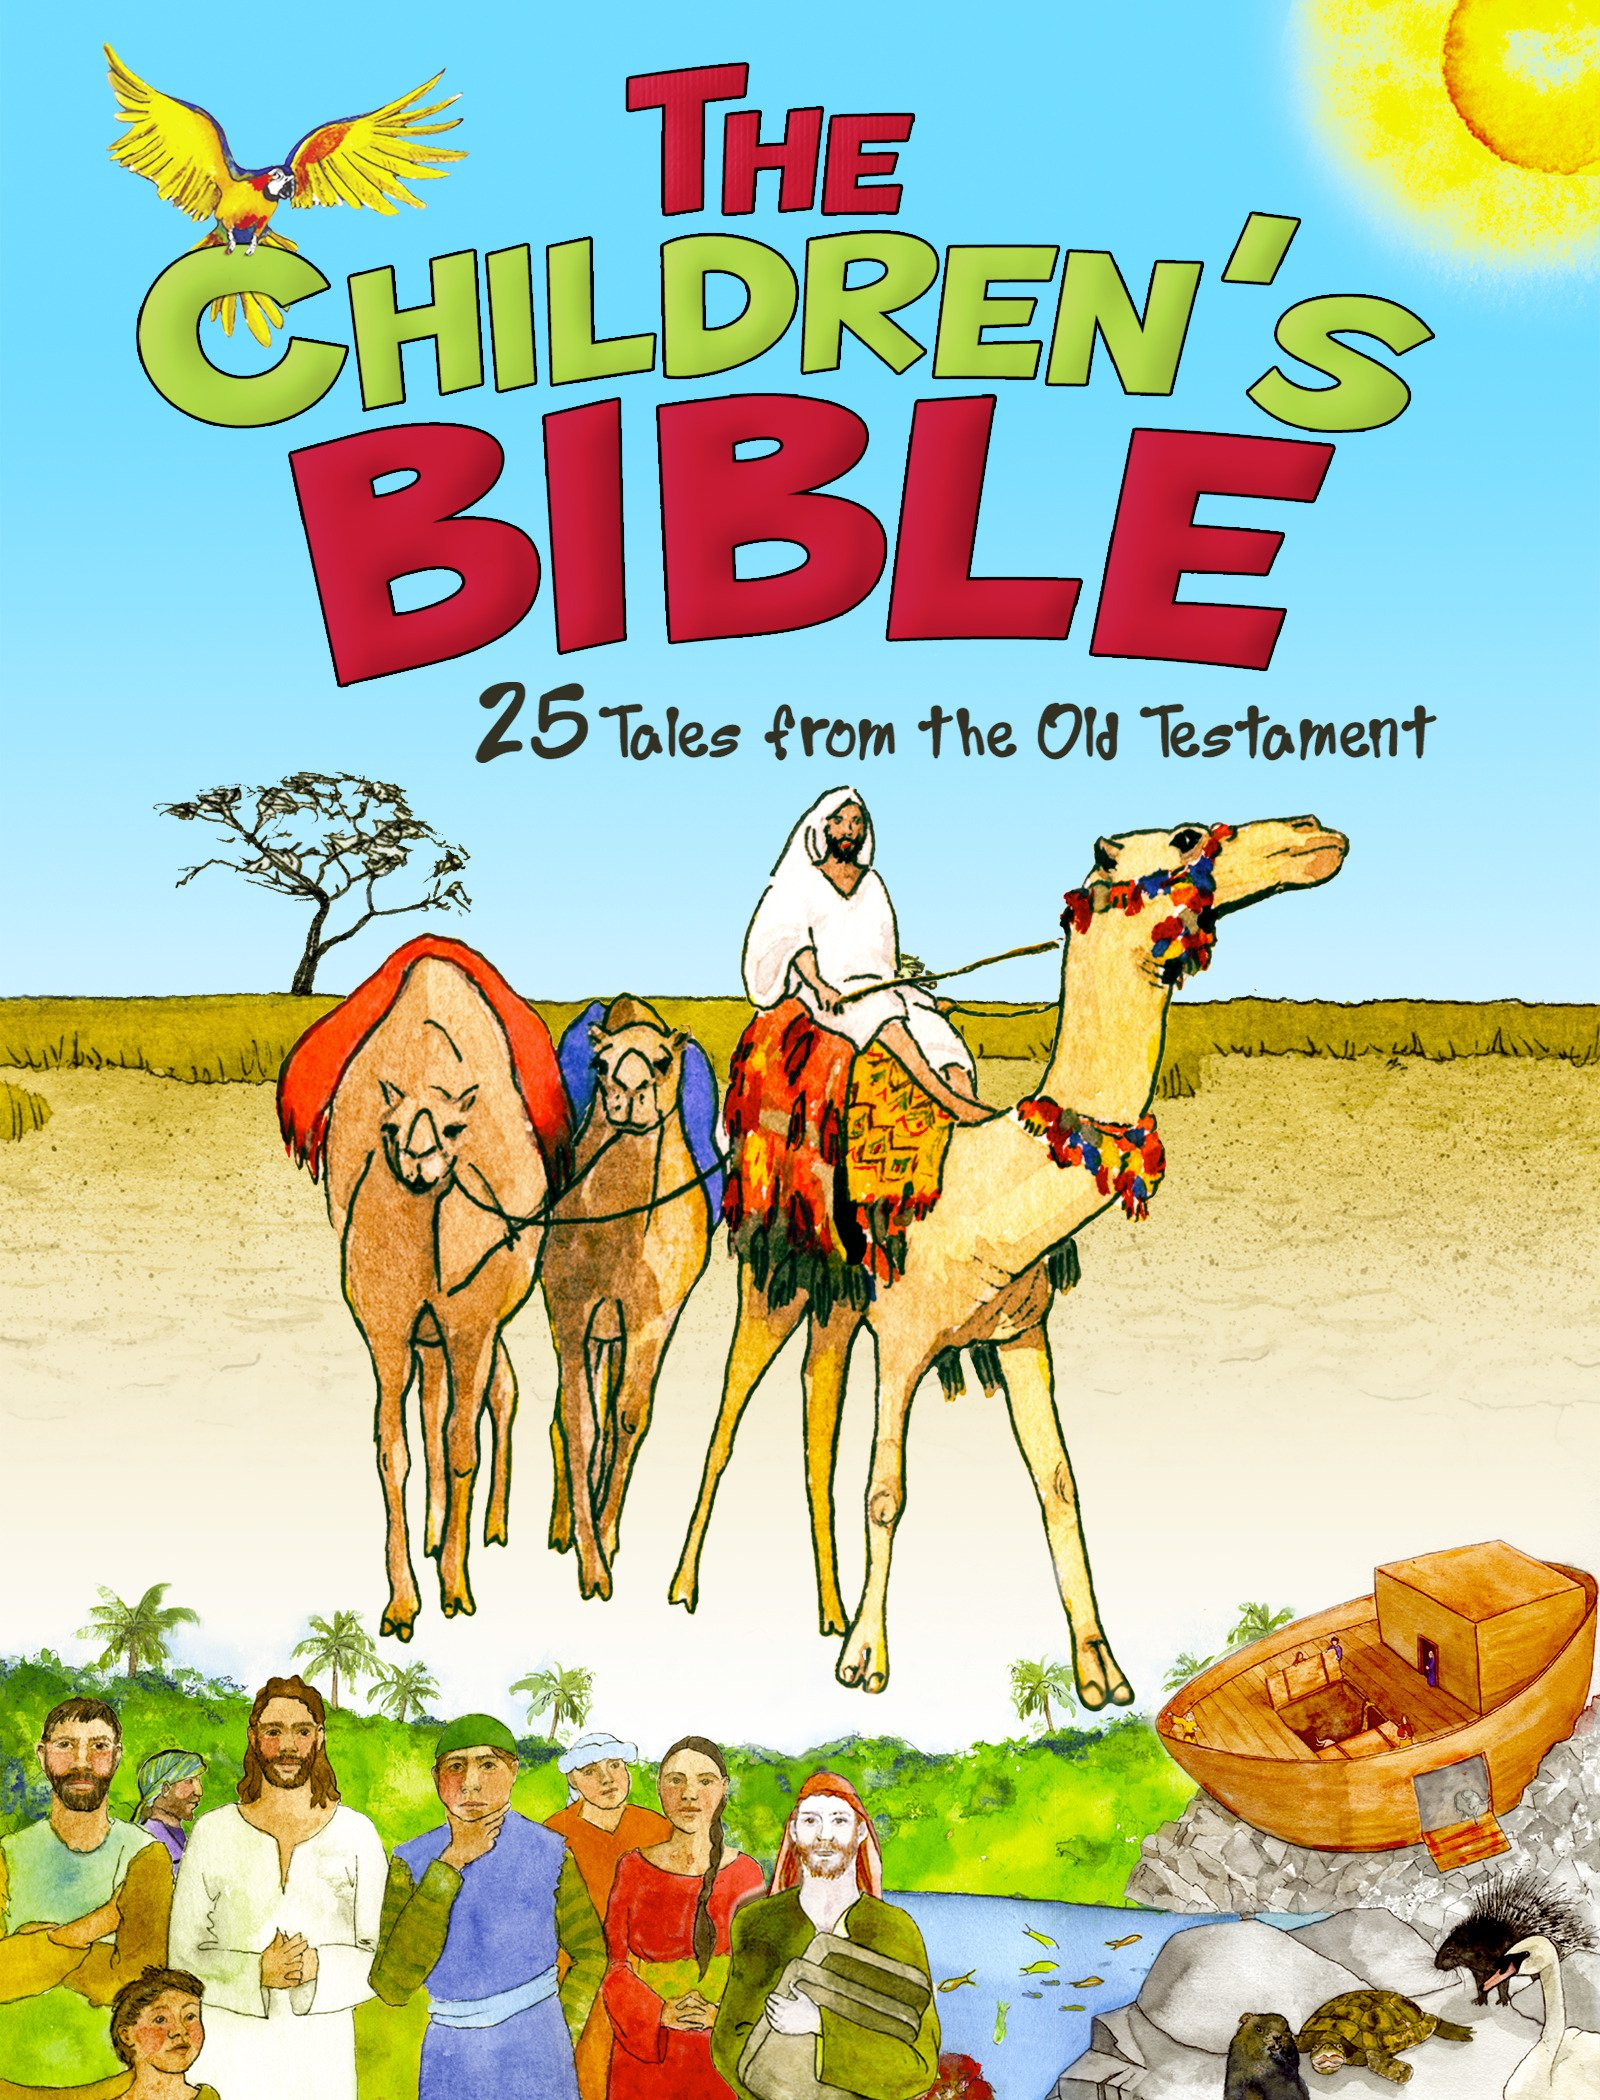 The Children's Bible: 25 Tales from the Old Testament